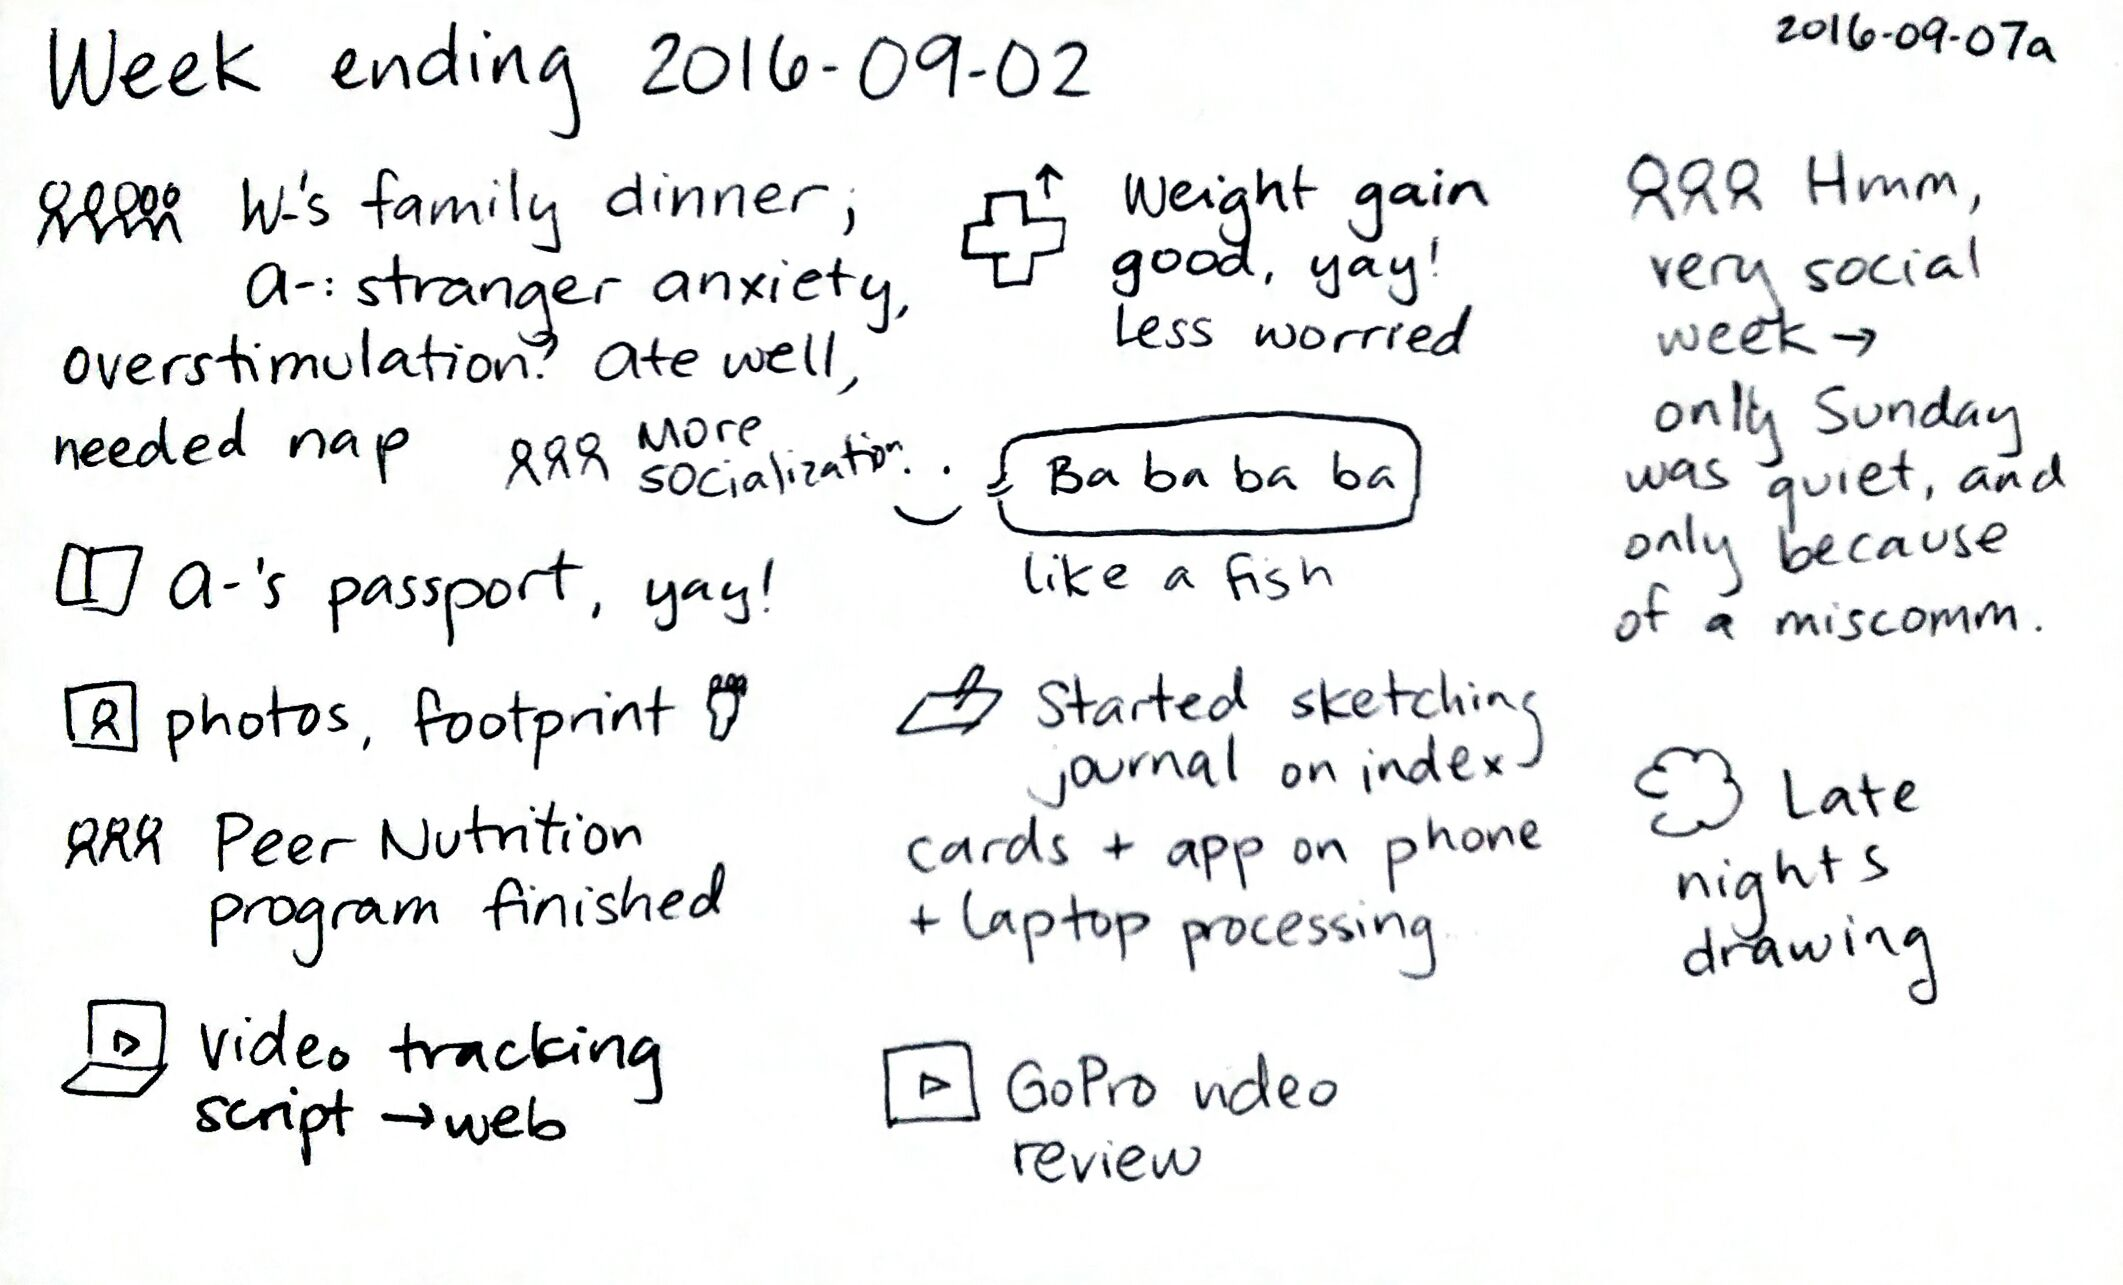 2016-09-07a Week ending 2016-09-02 -- index card #journal #weekly.png